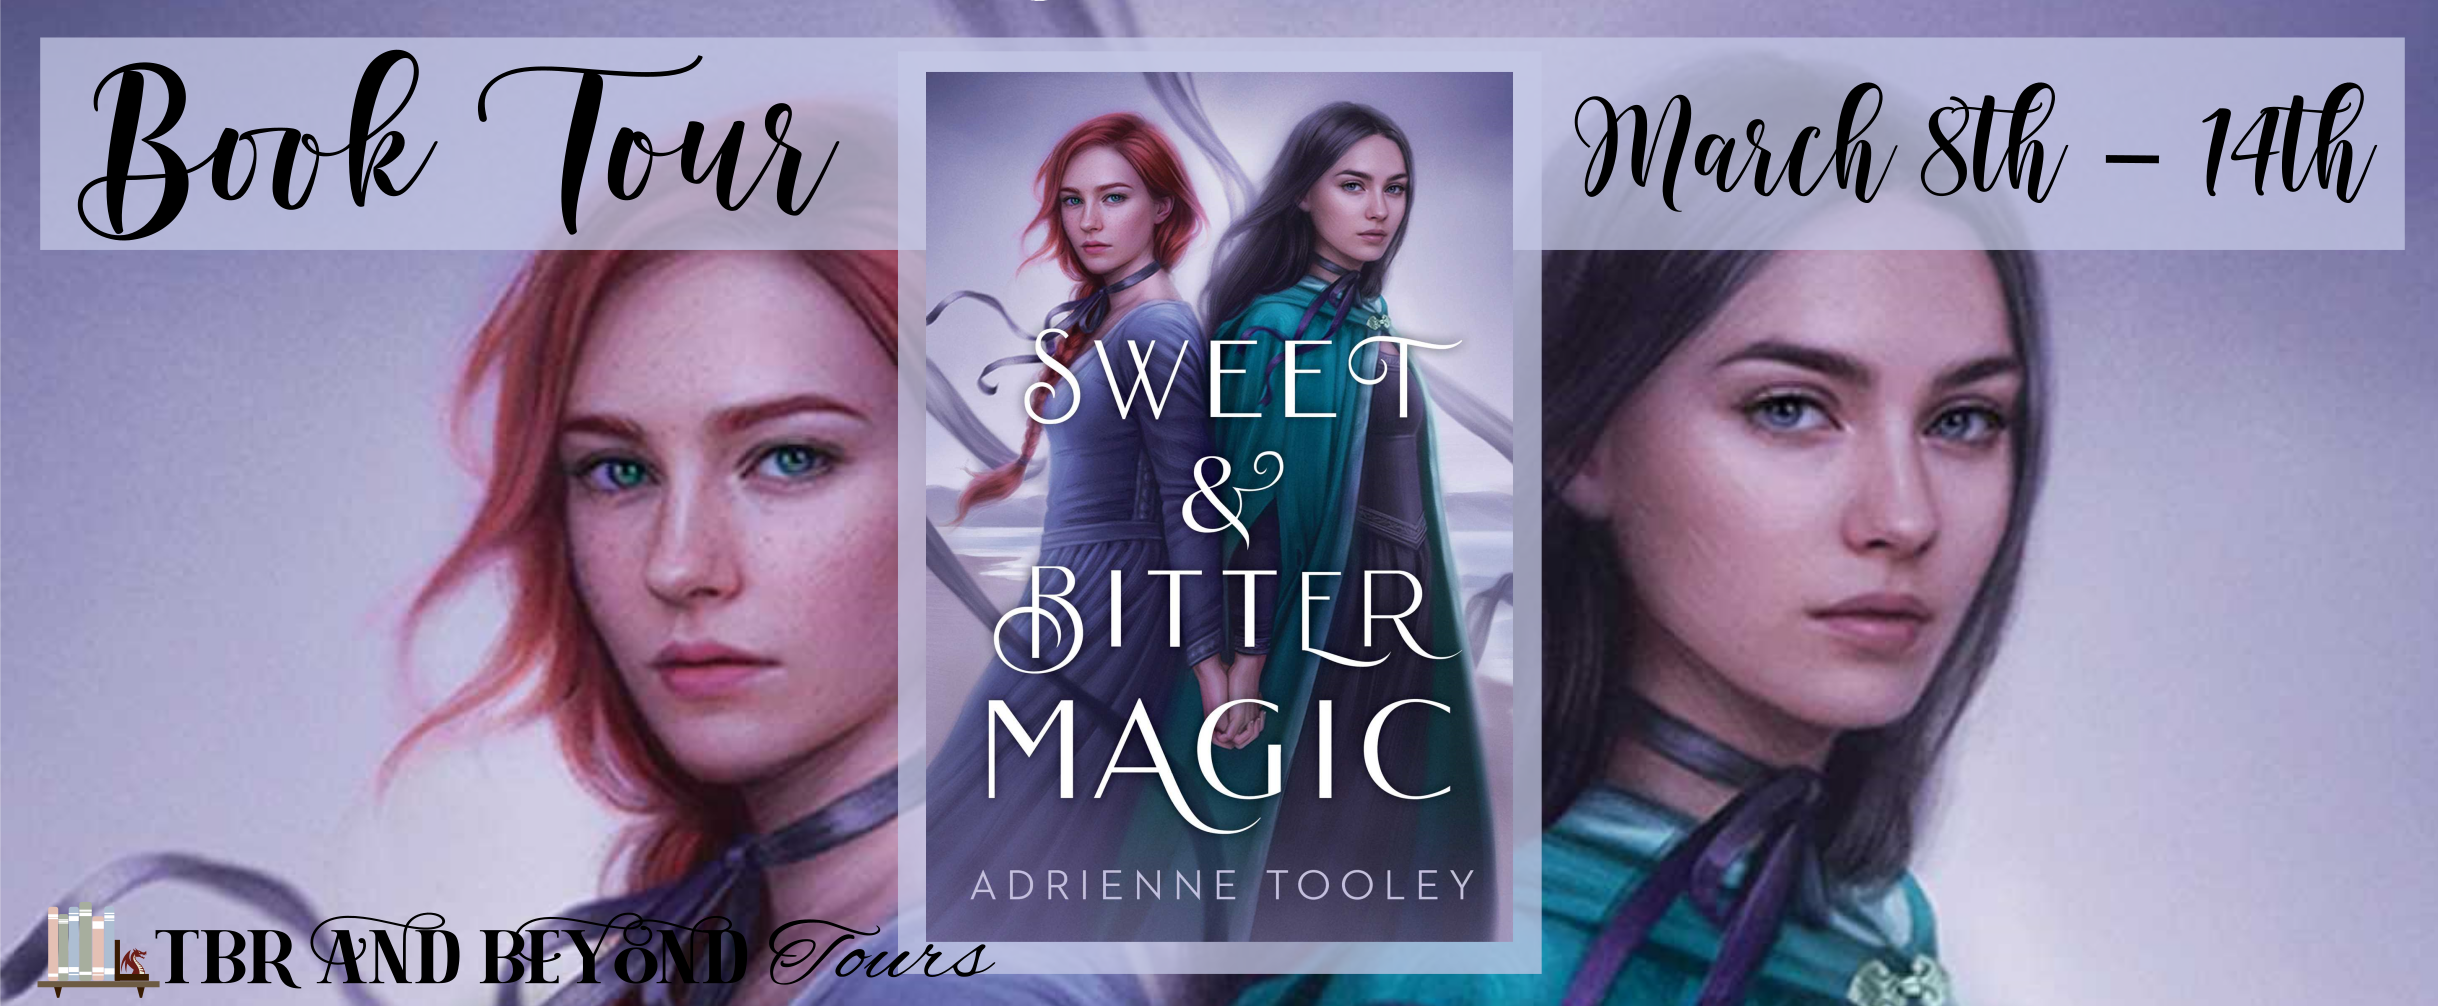 Sweet and Bitter Magic tour banner